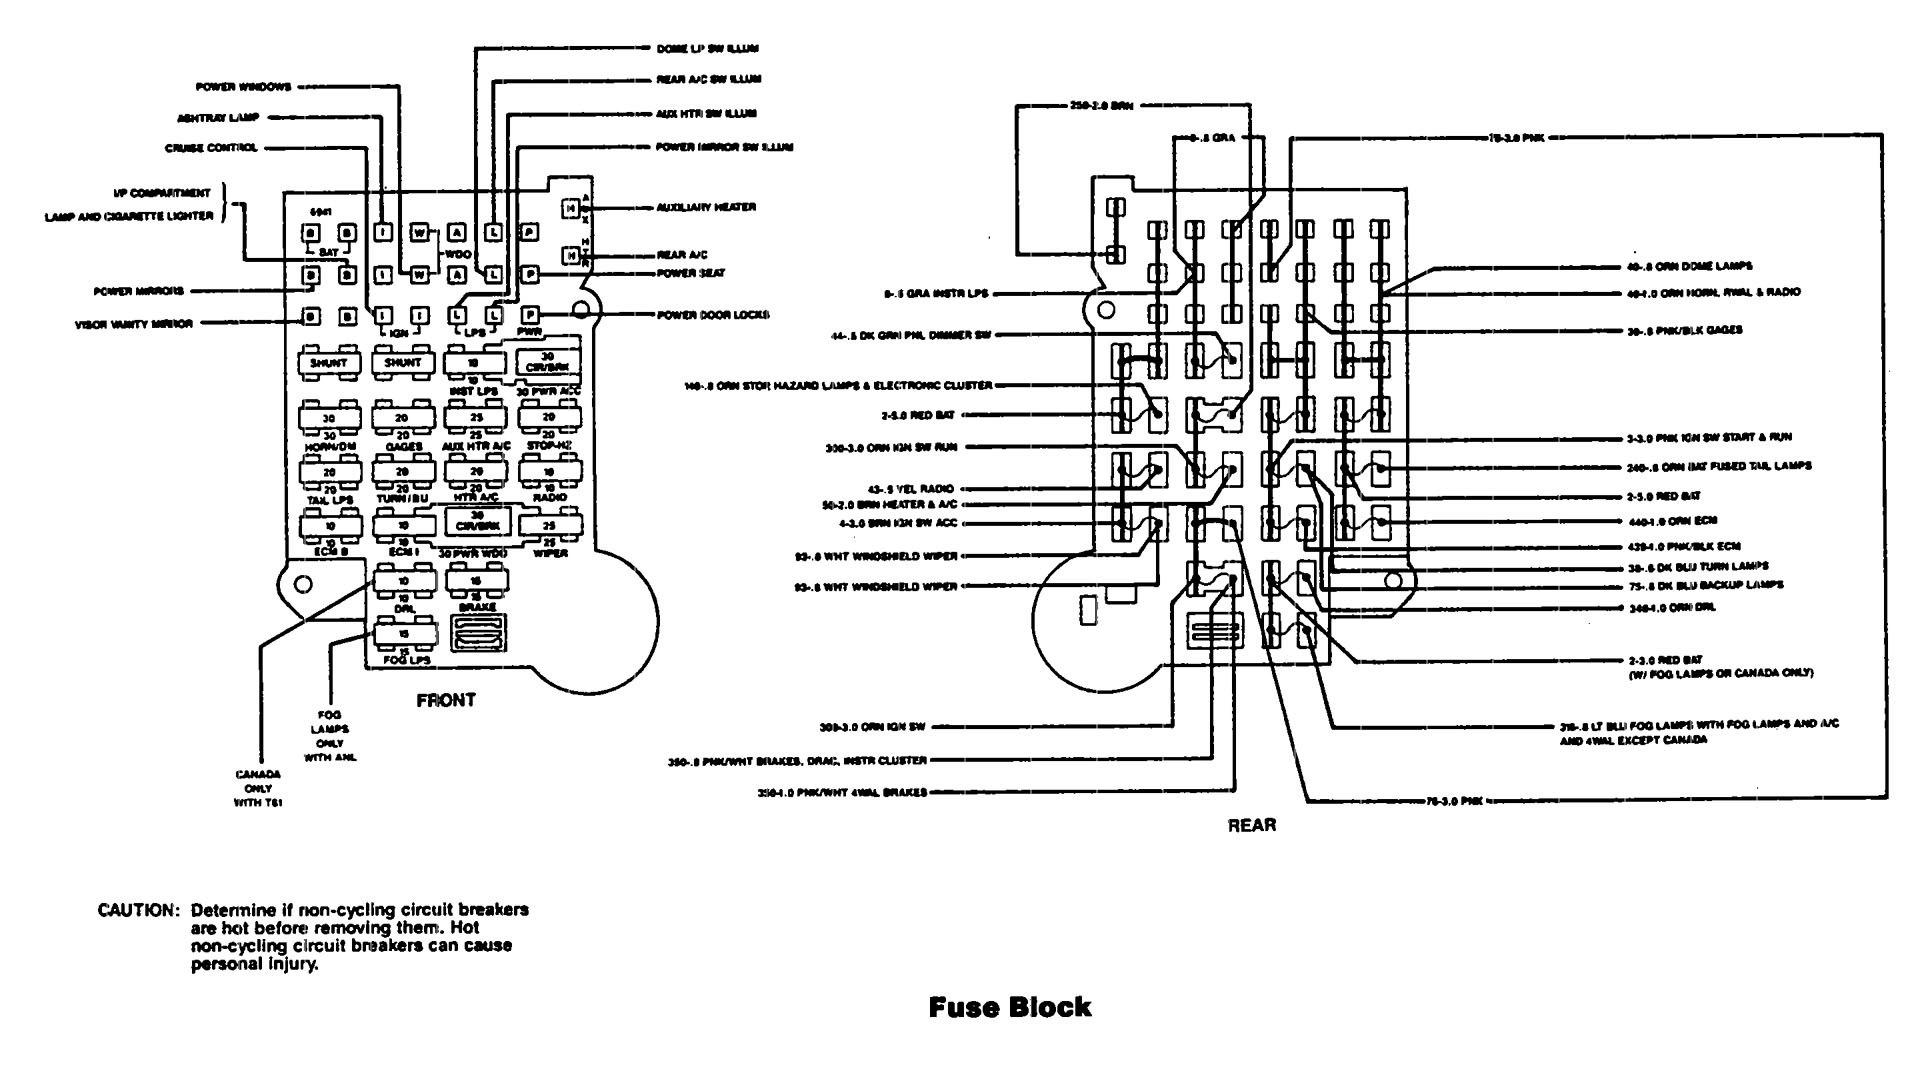 Wiring Diagram 91 Chevy S10 Blazer